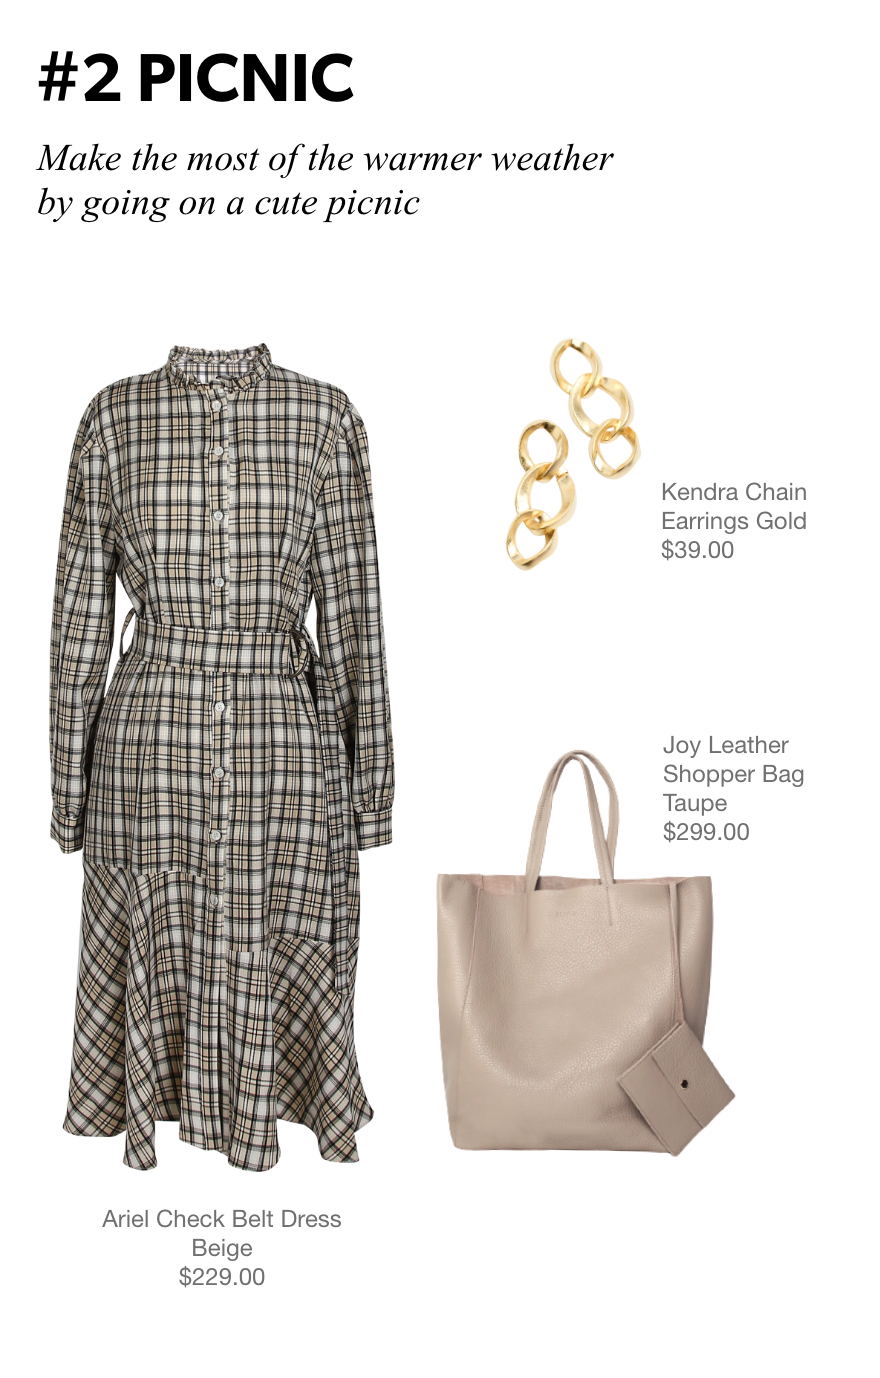 OLIVIA Blog: Spring Outfit Guide 2020